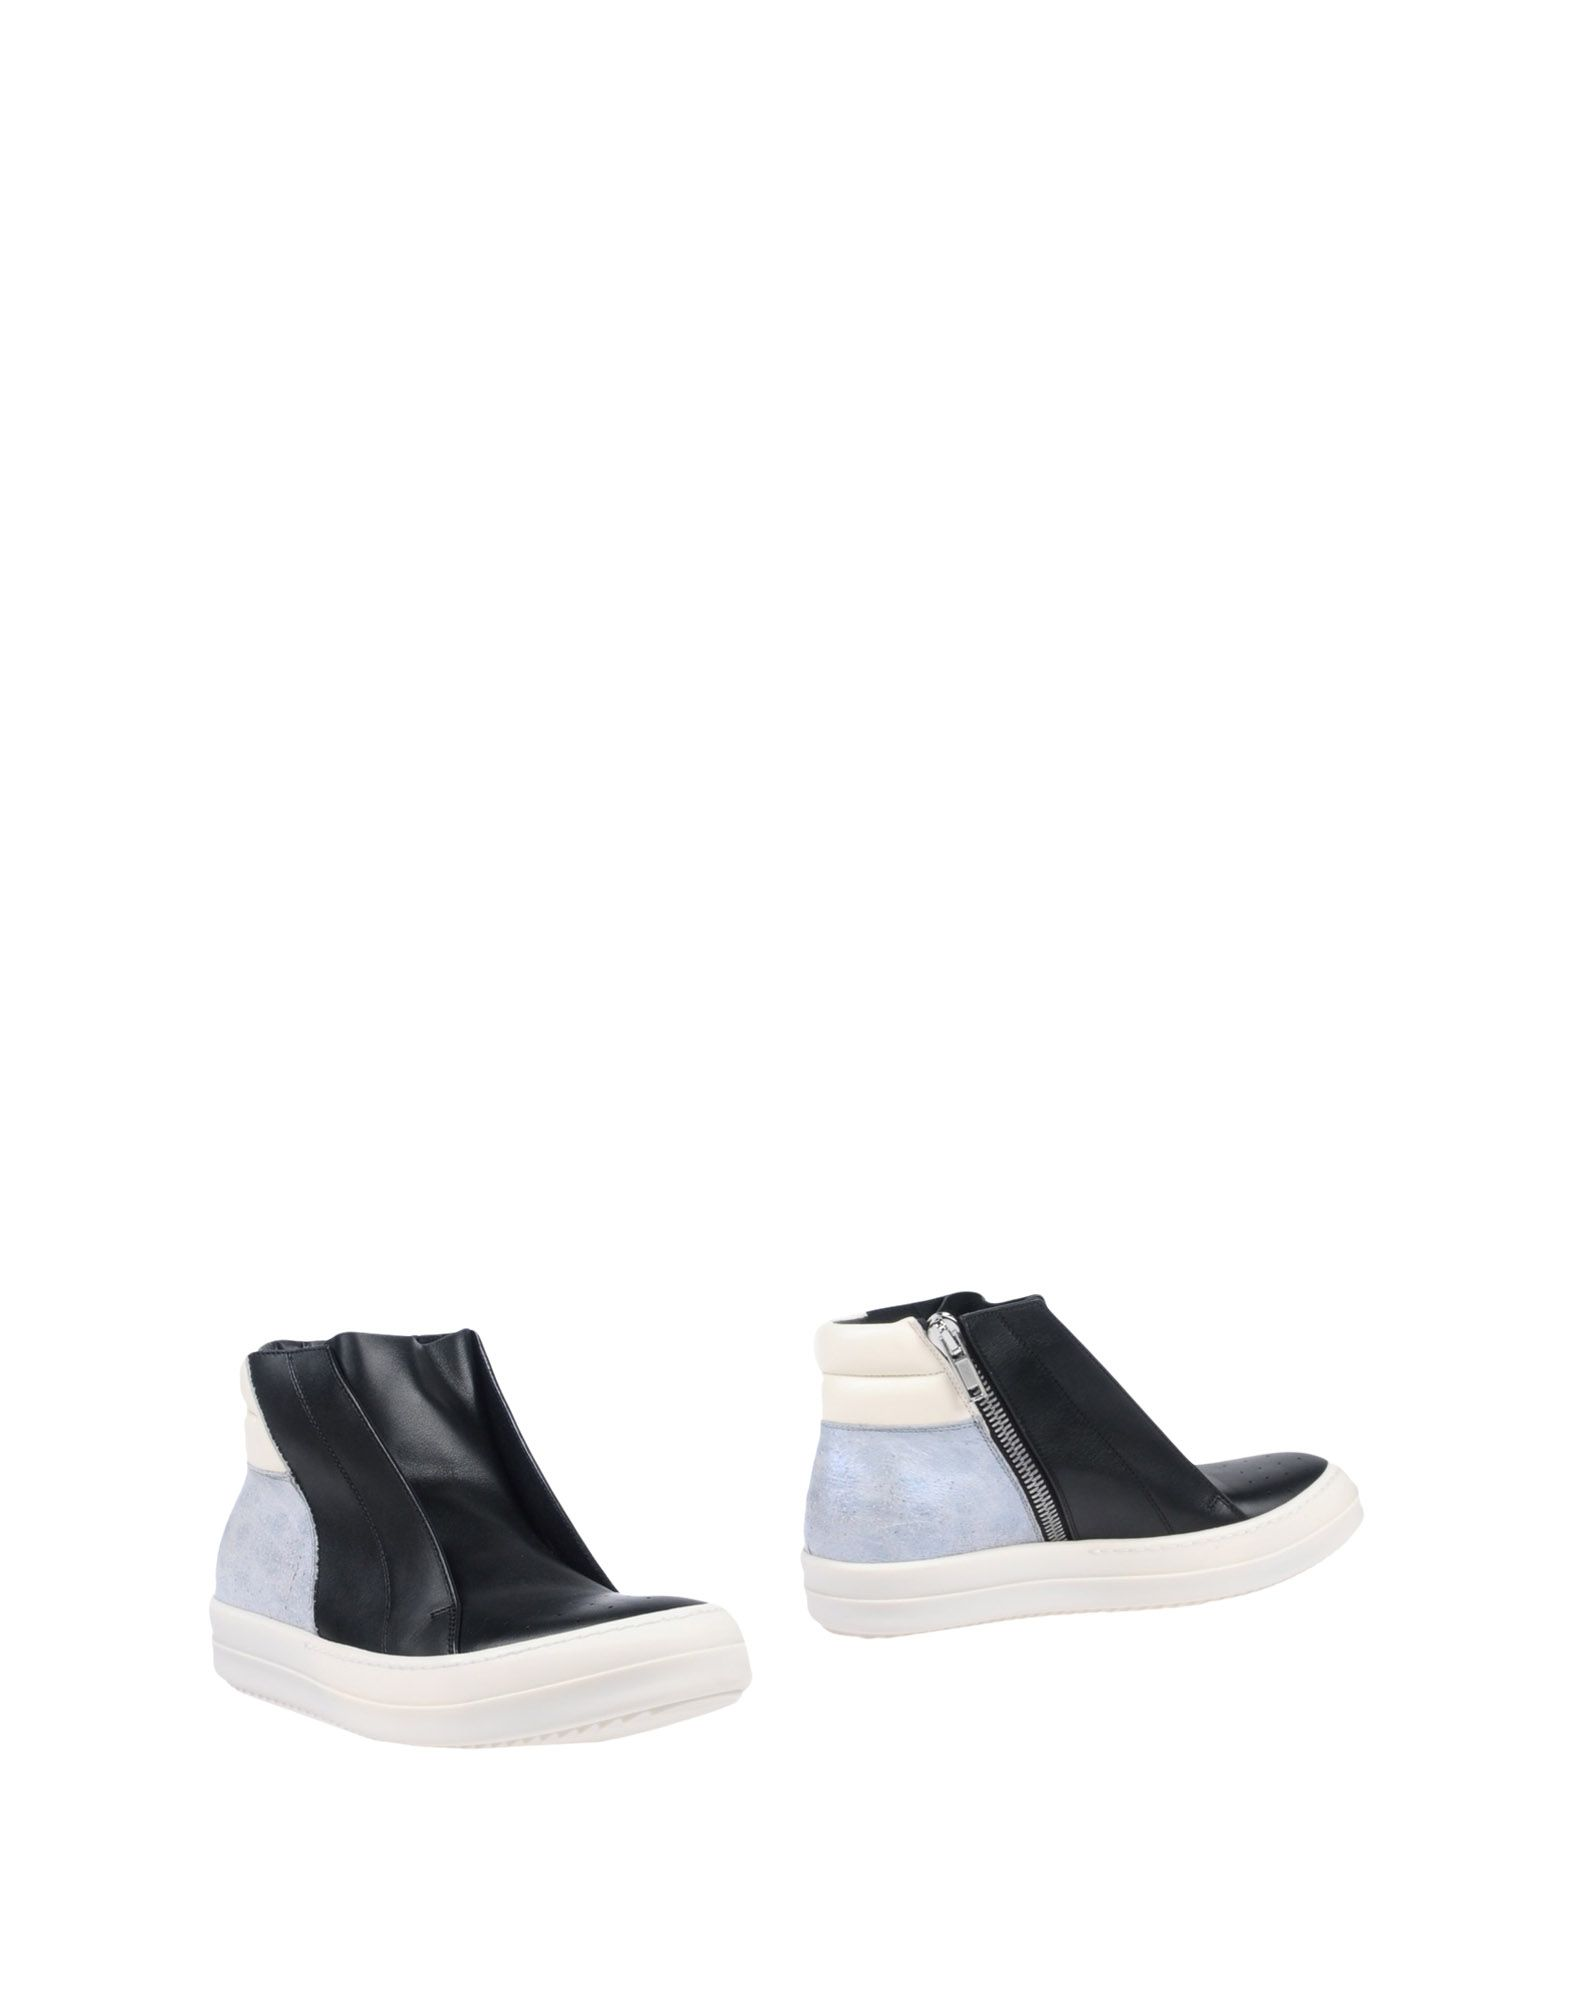 Bottine Rick Owens Homme - Bottines Rick Owens sur